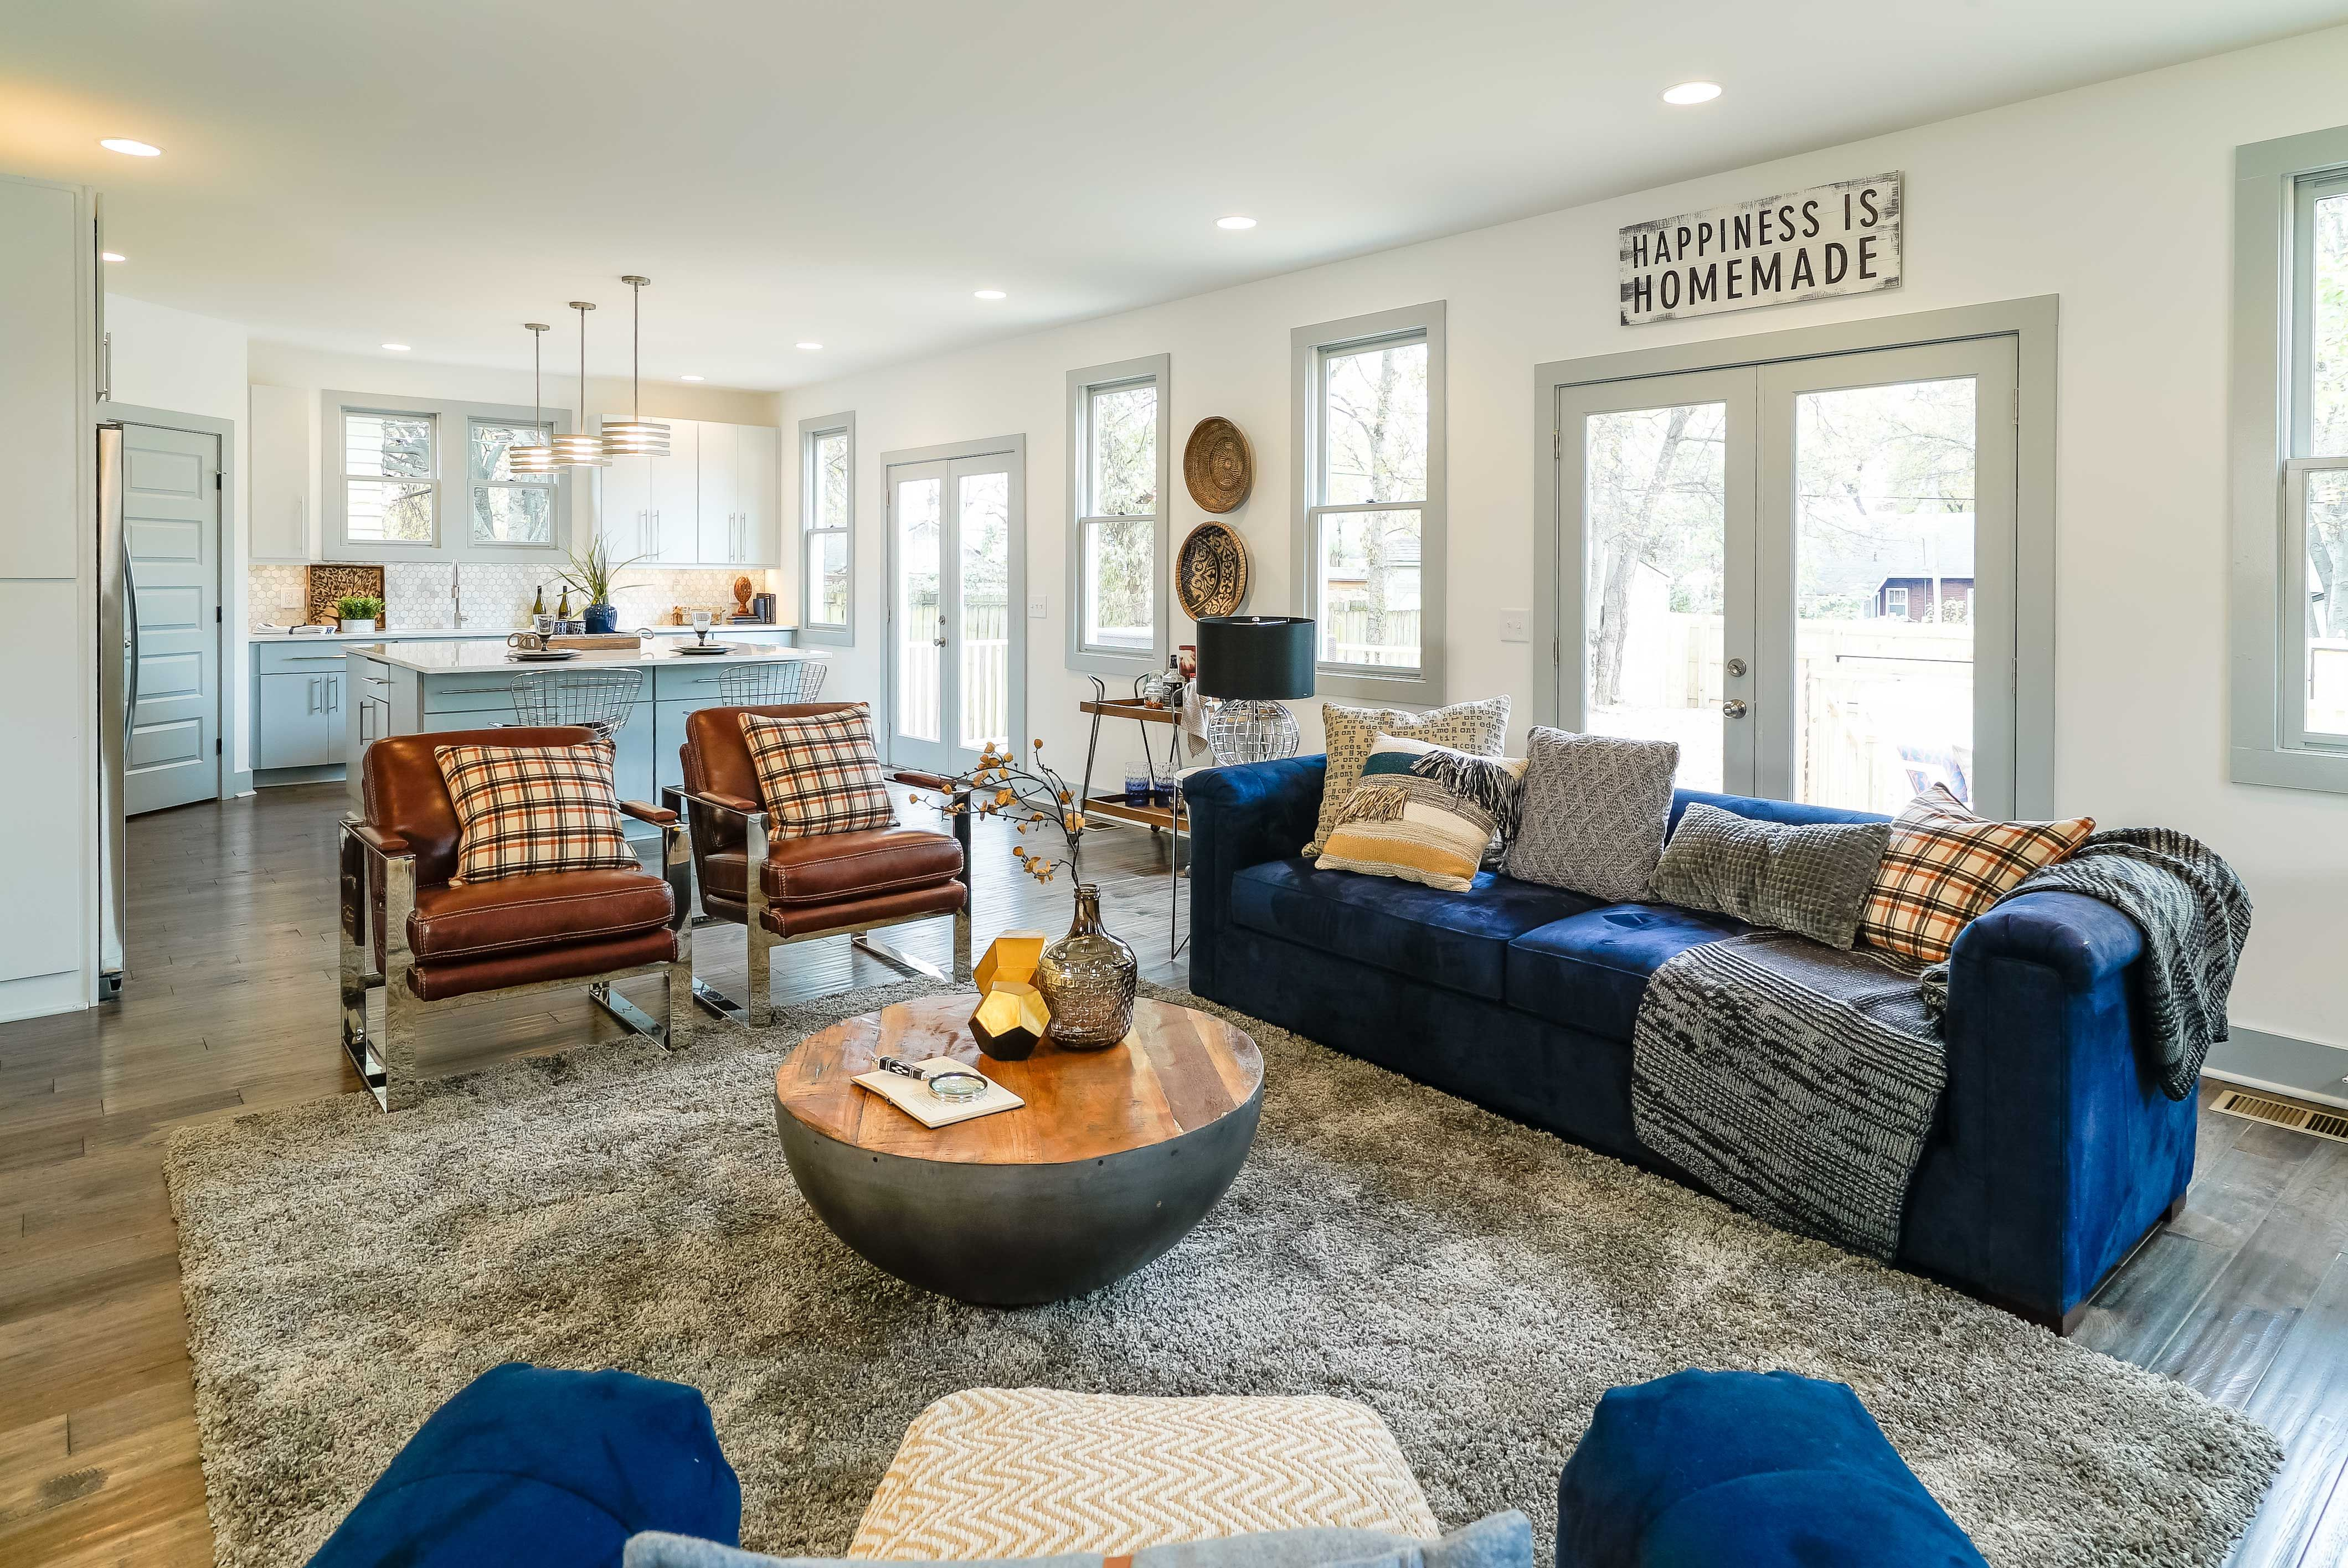 This Gorgeous Open Concept Home Features A Genius Guest Suite Open Concept Home Masters Of Flip Leather Chair Living Room